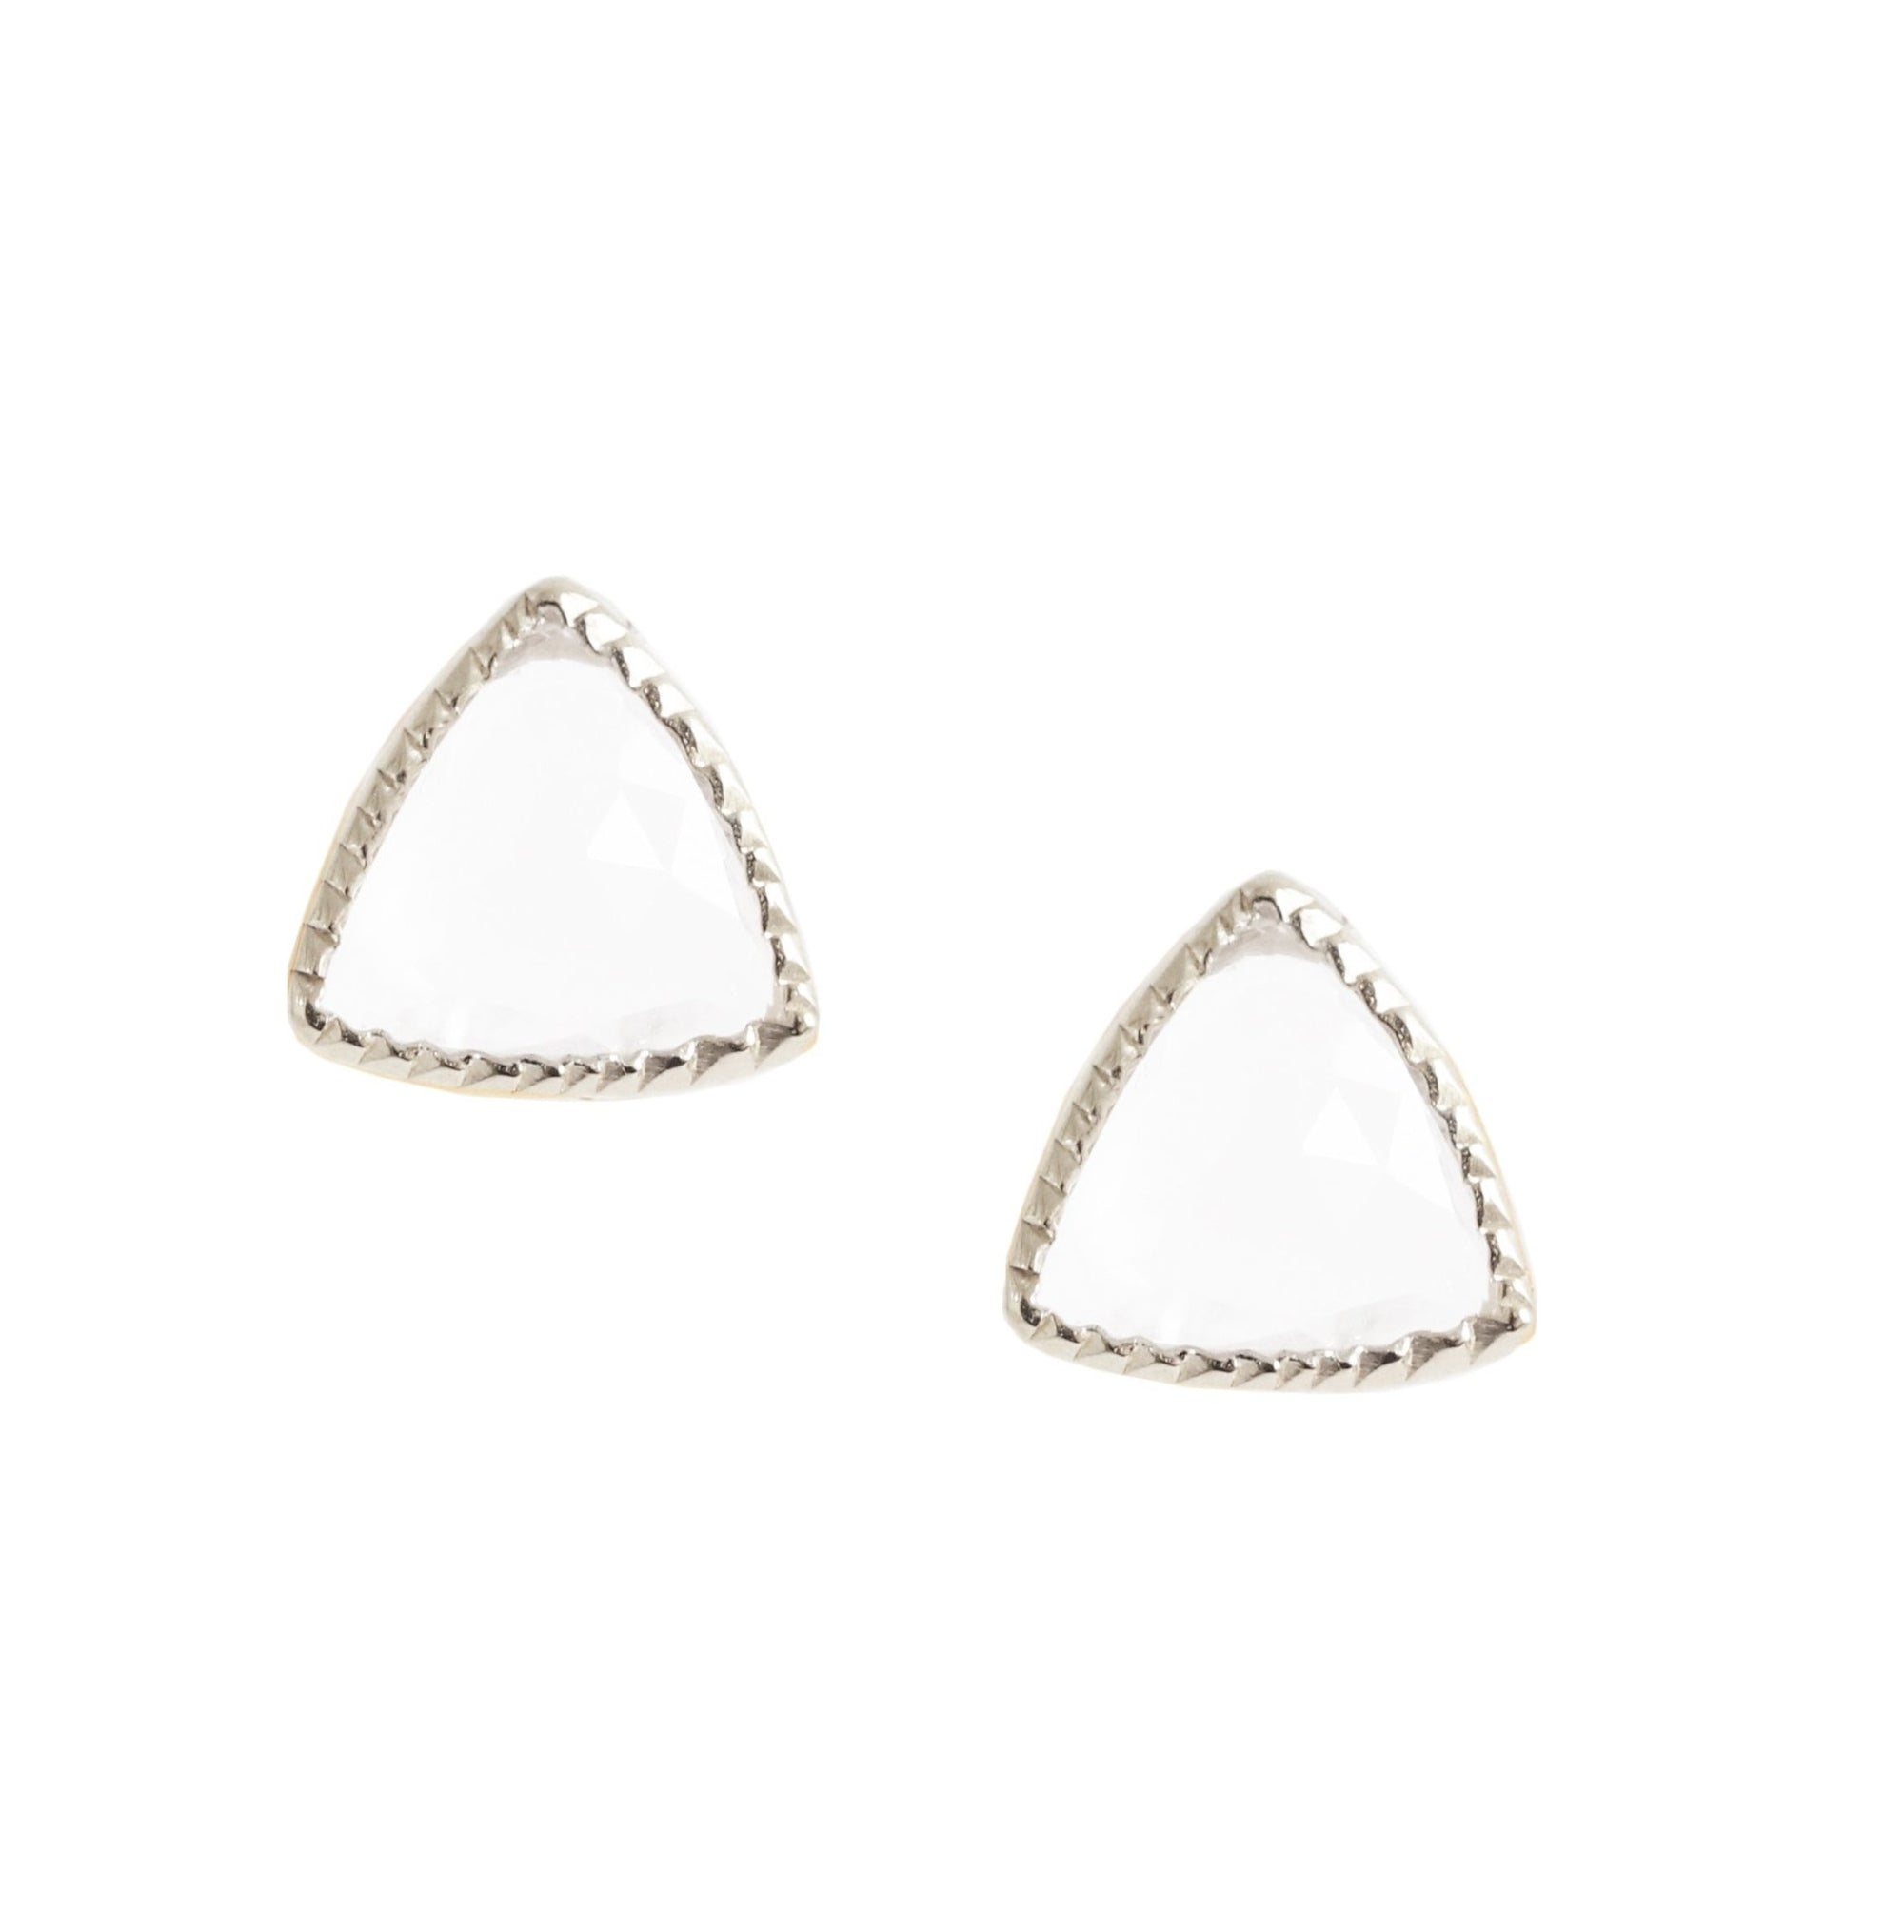 MINI FREEDOM STUD EARRINGS - WHITE TOPAZ & SILVER - SO PRETTY CARA COTTER